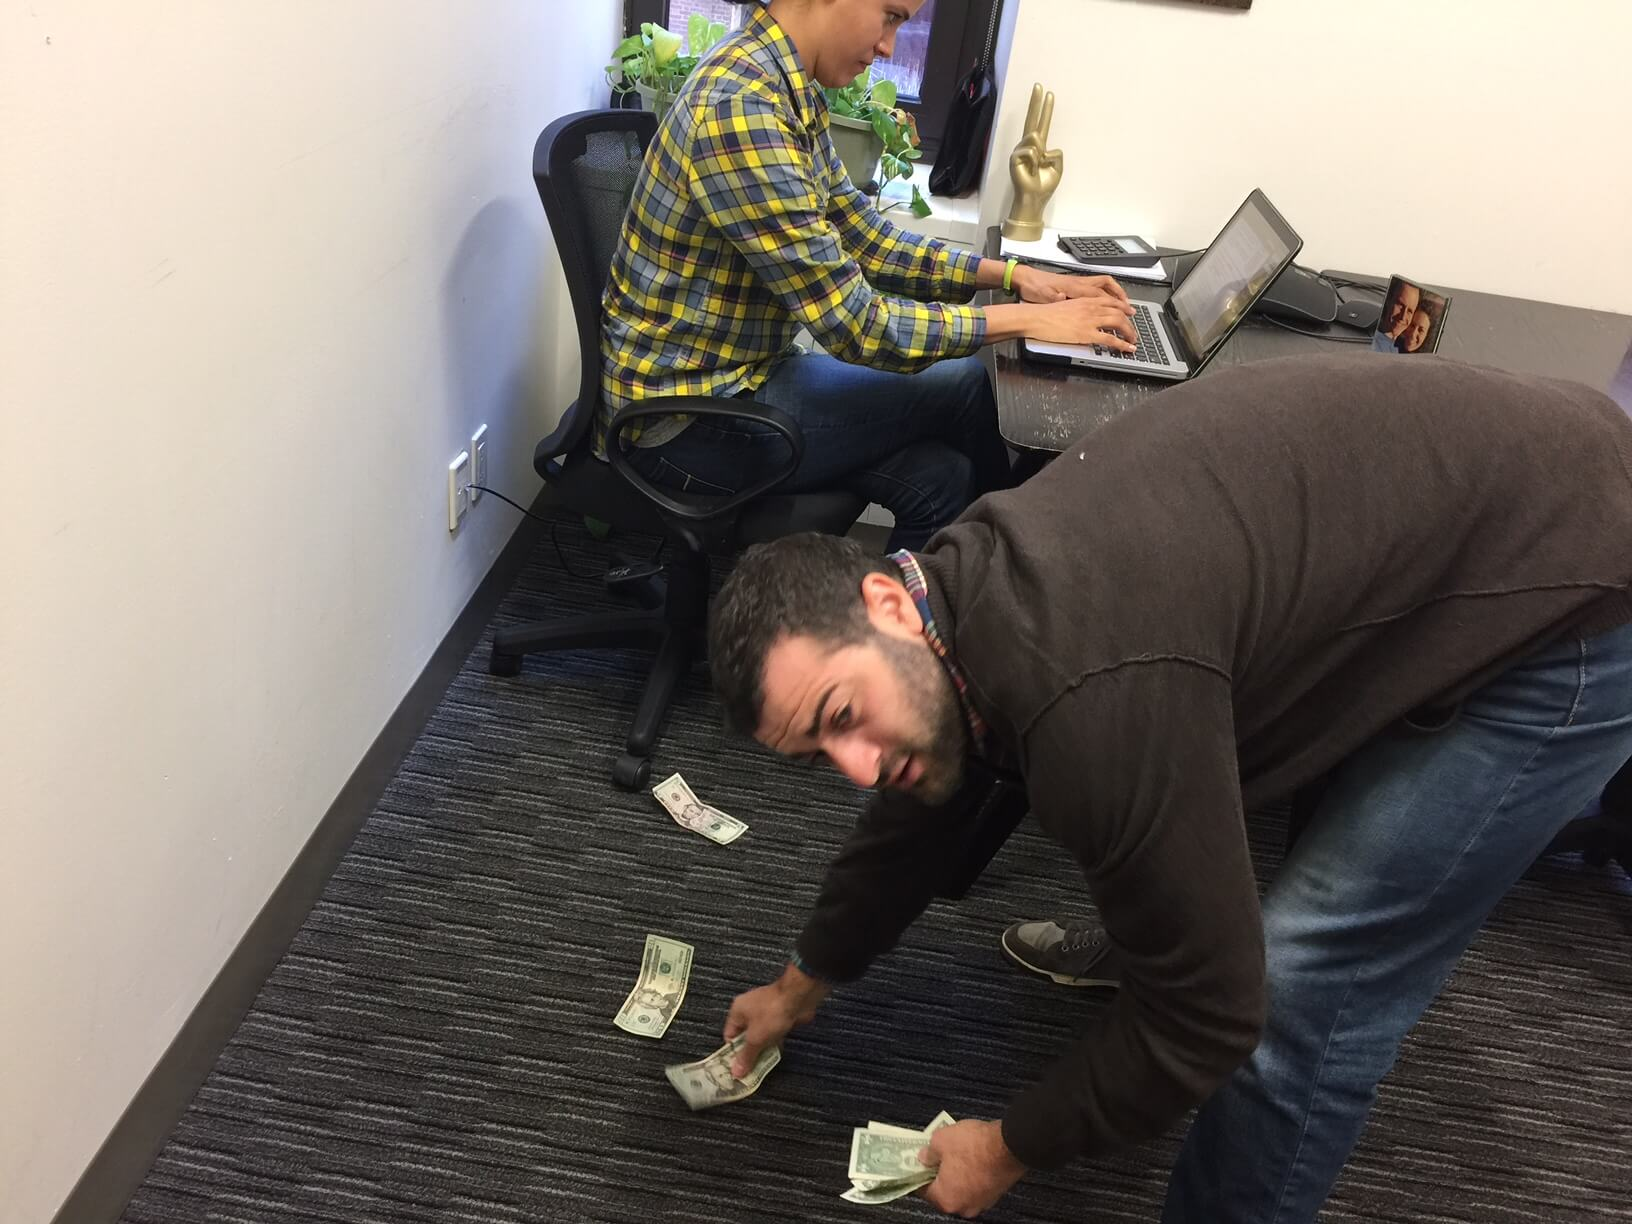 Then you have to awkwardly scrounge around on the floor to get your money. Fun!